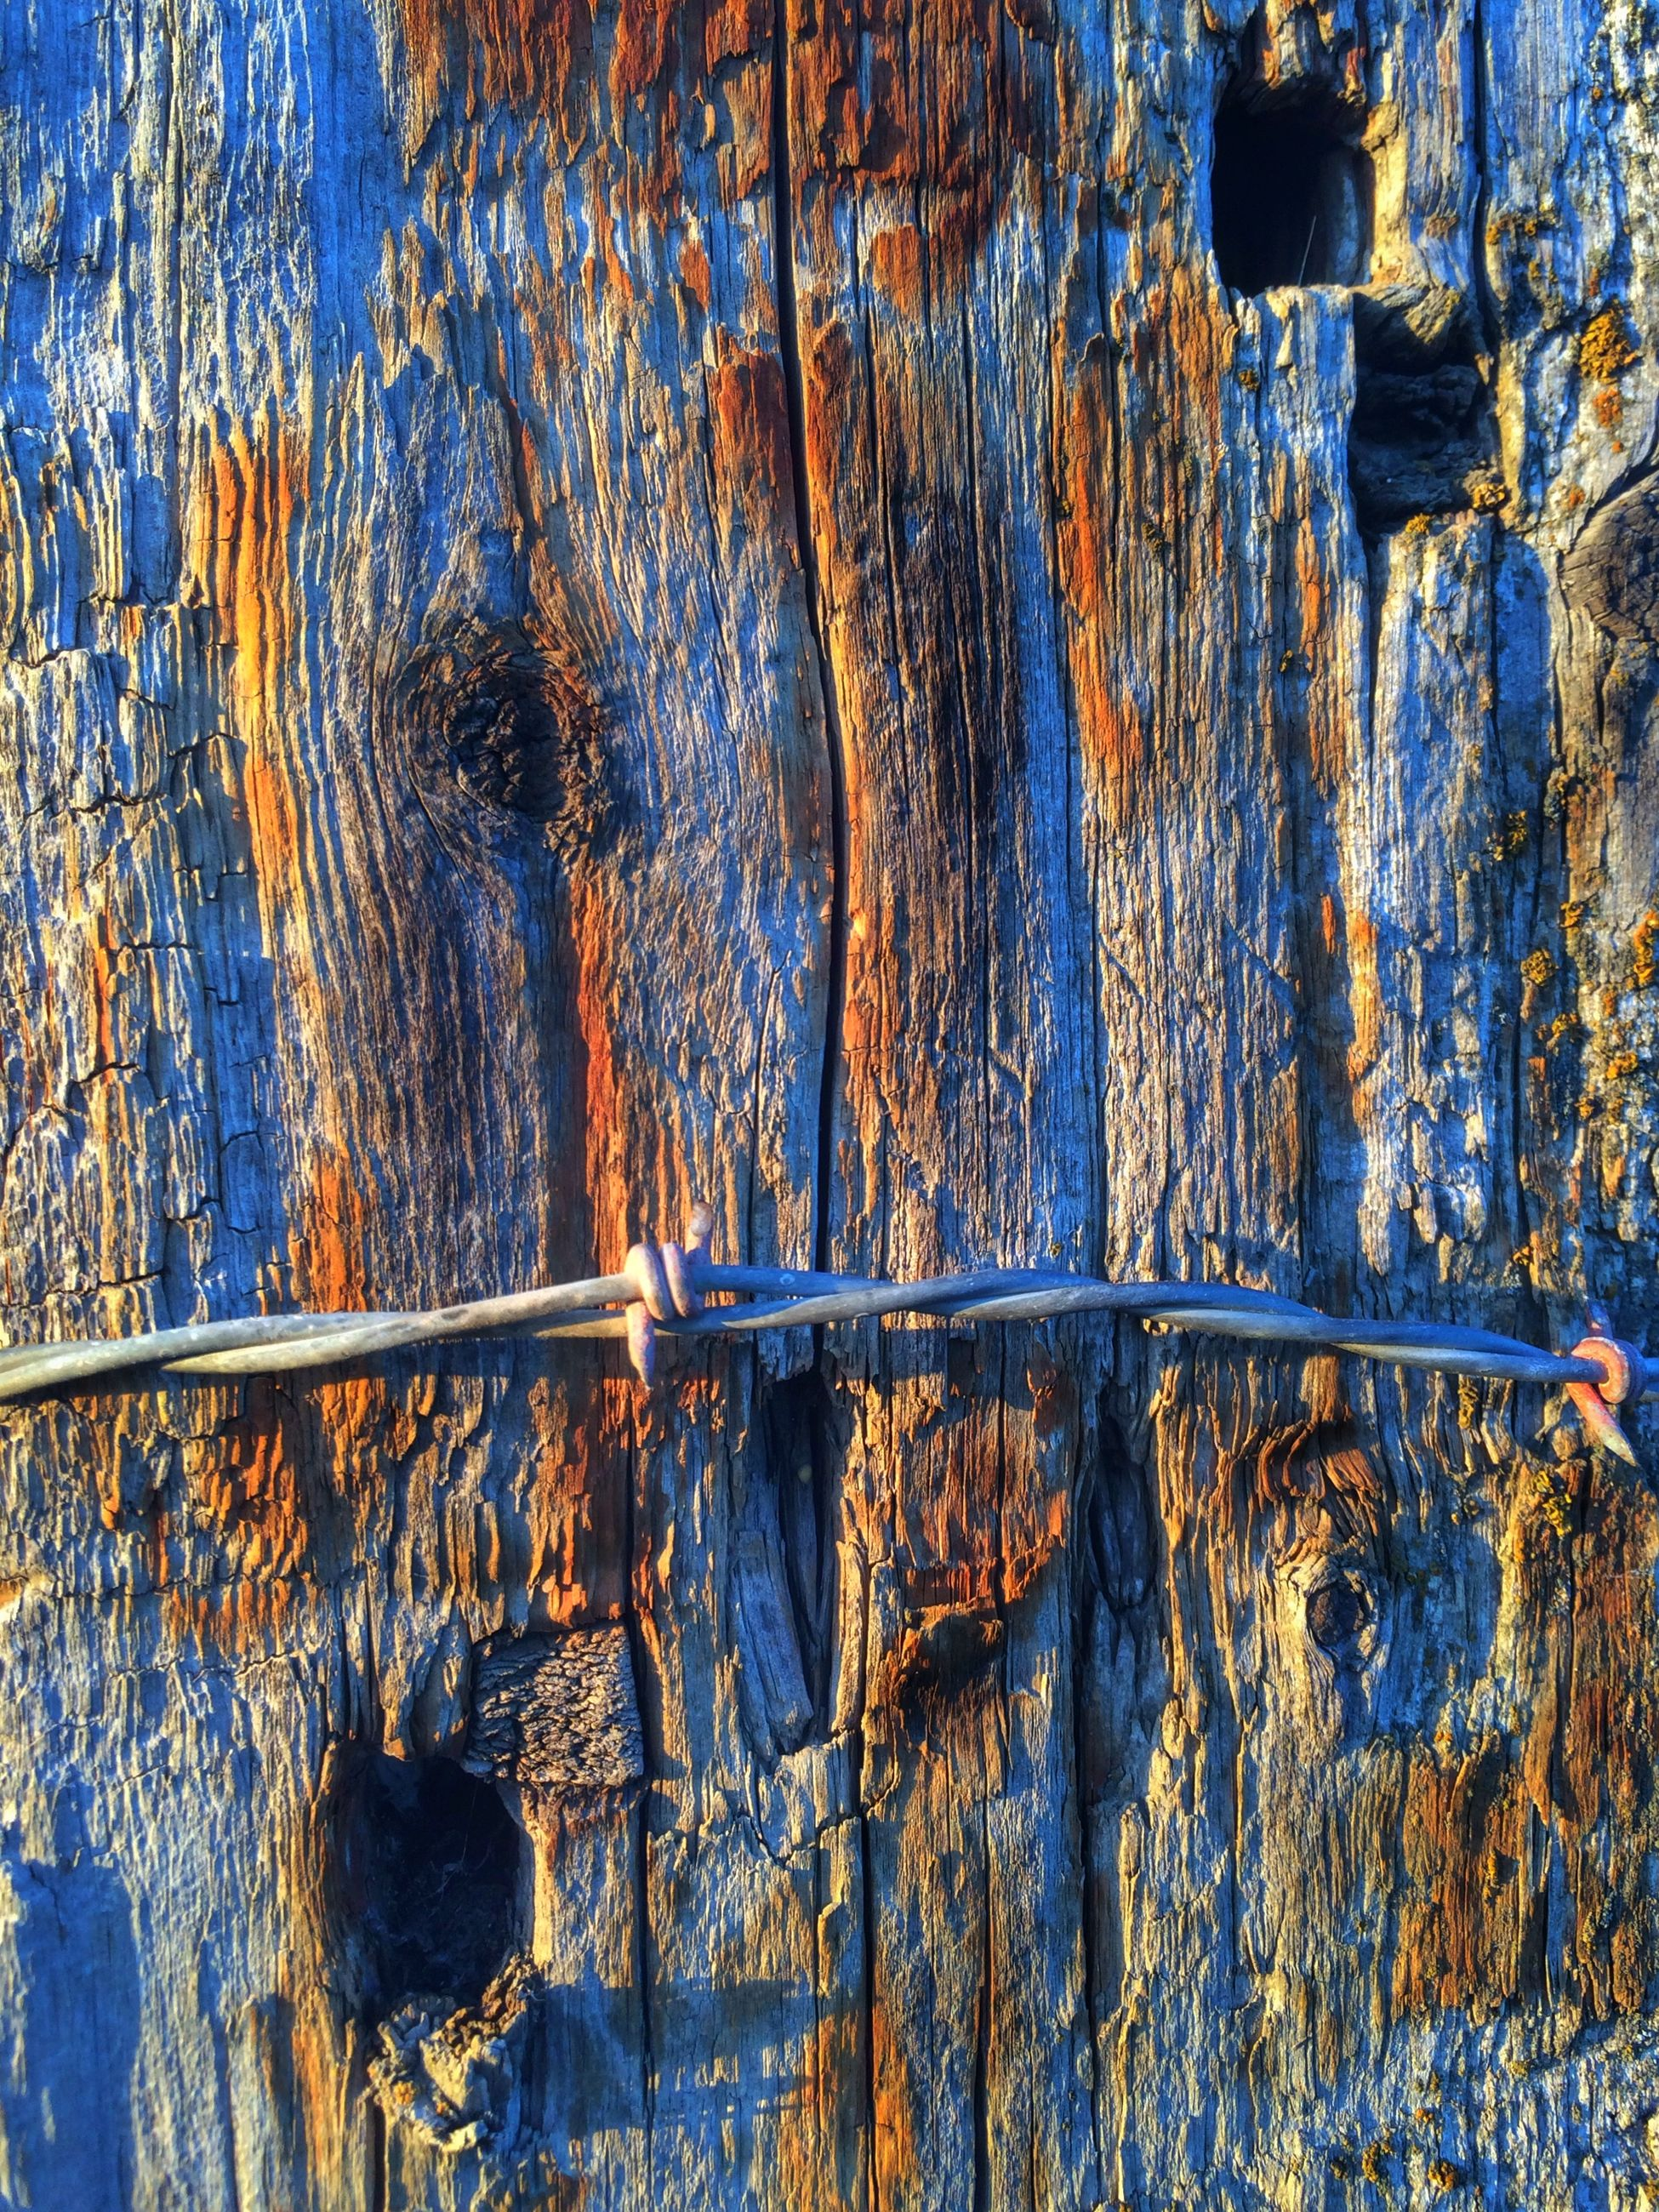 full frame, textured, backgrounds, weathered, wood - material, close-up, old, pattern, rough, wooden, wood, rusty, deterioration, detail, damaged, blue, built structure, no people, wall - building feature, part of